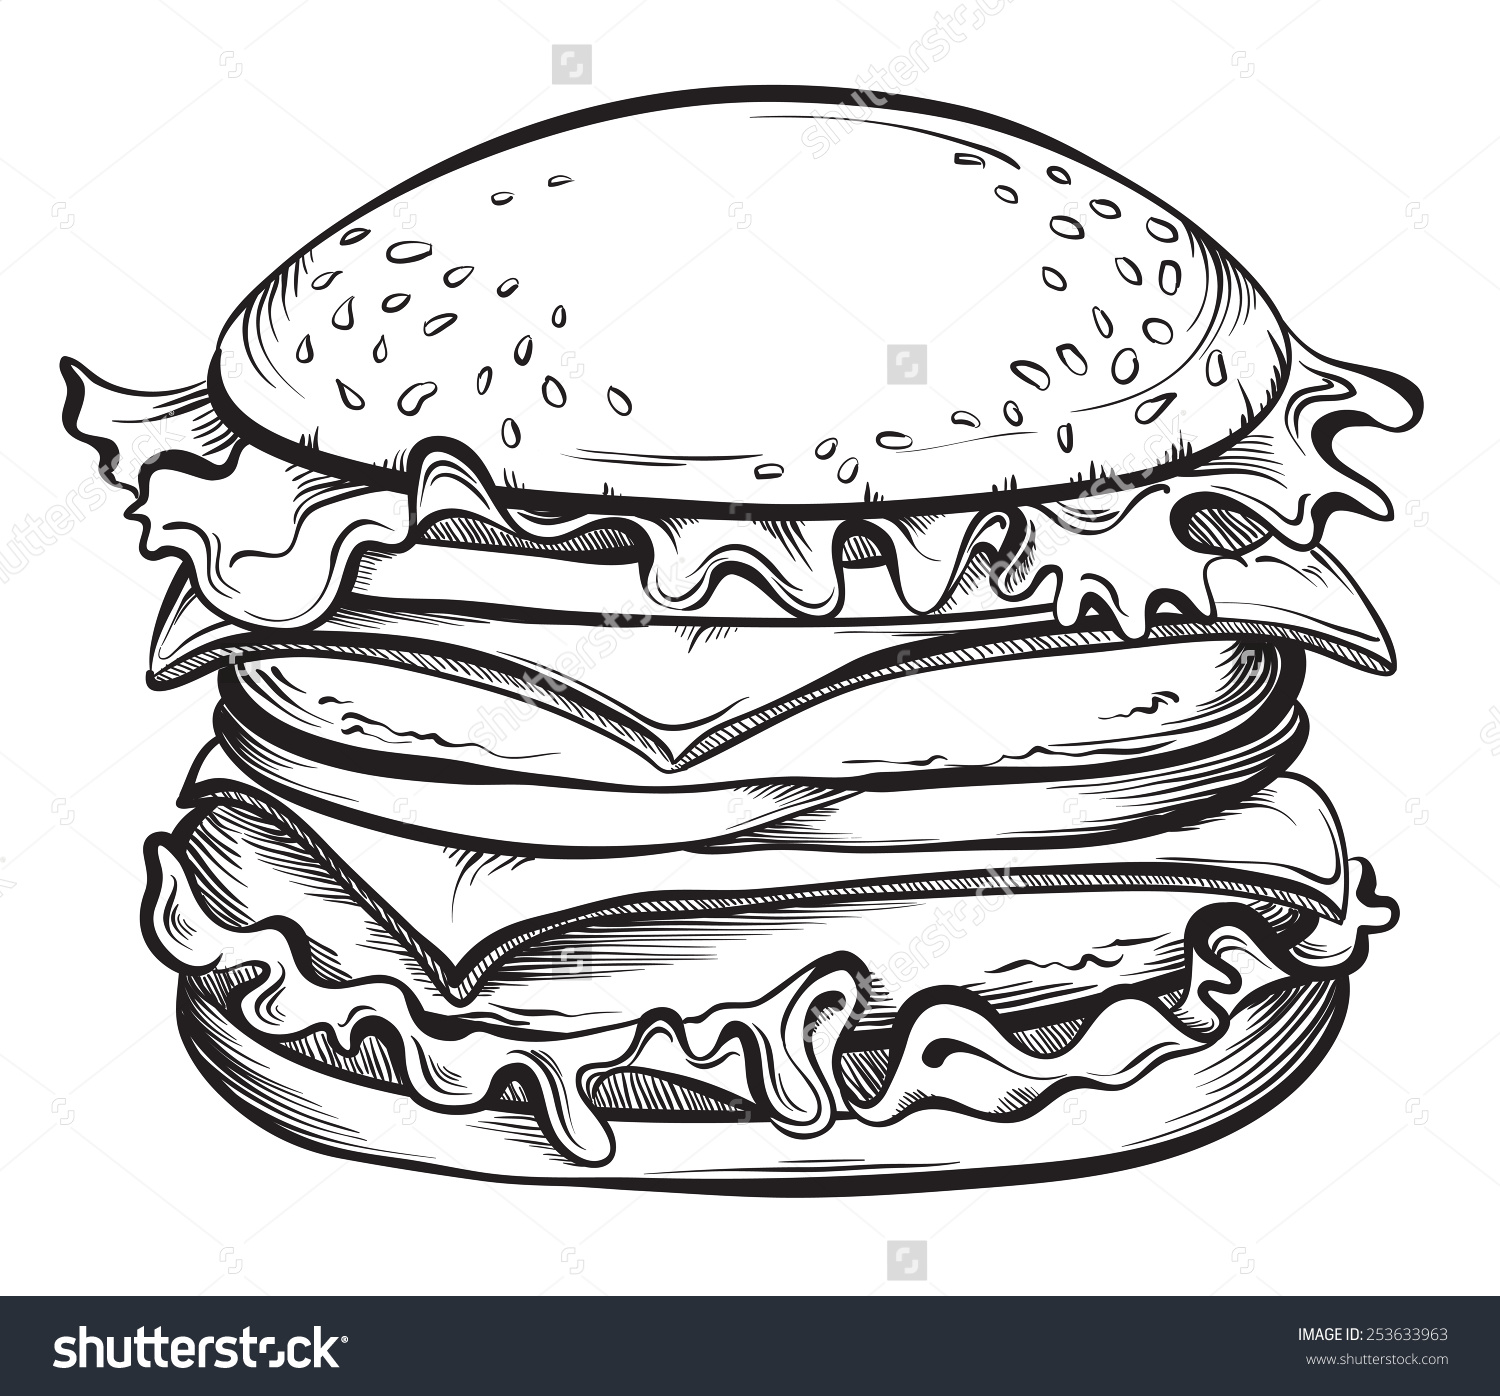 Drawn hamburger And Search illustration black Works